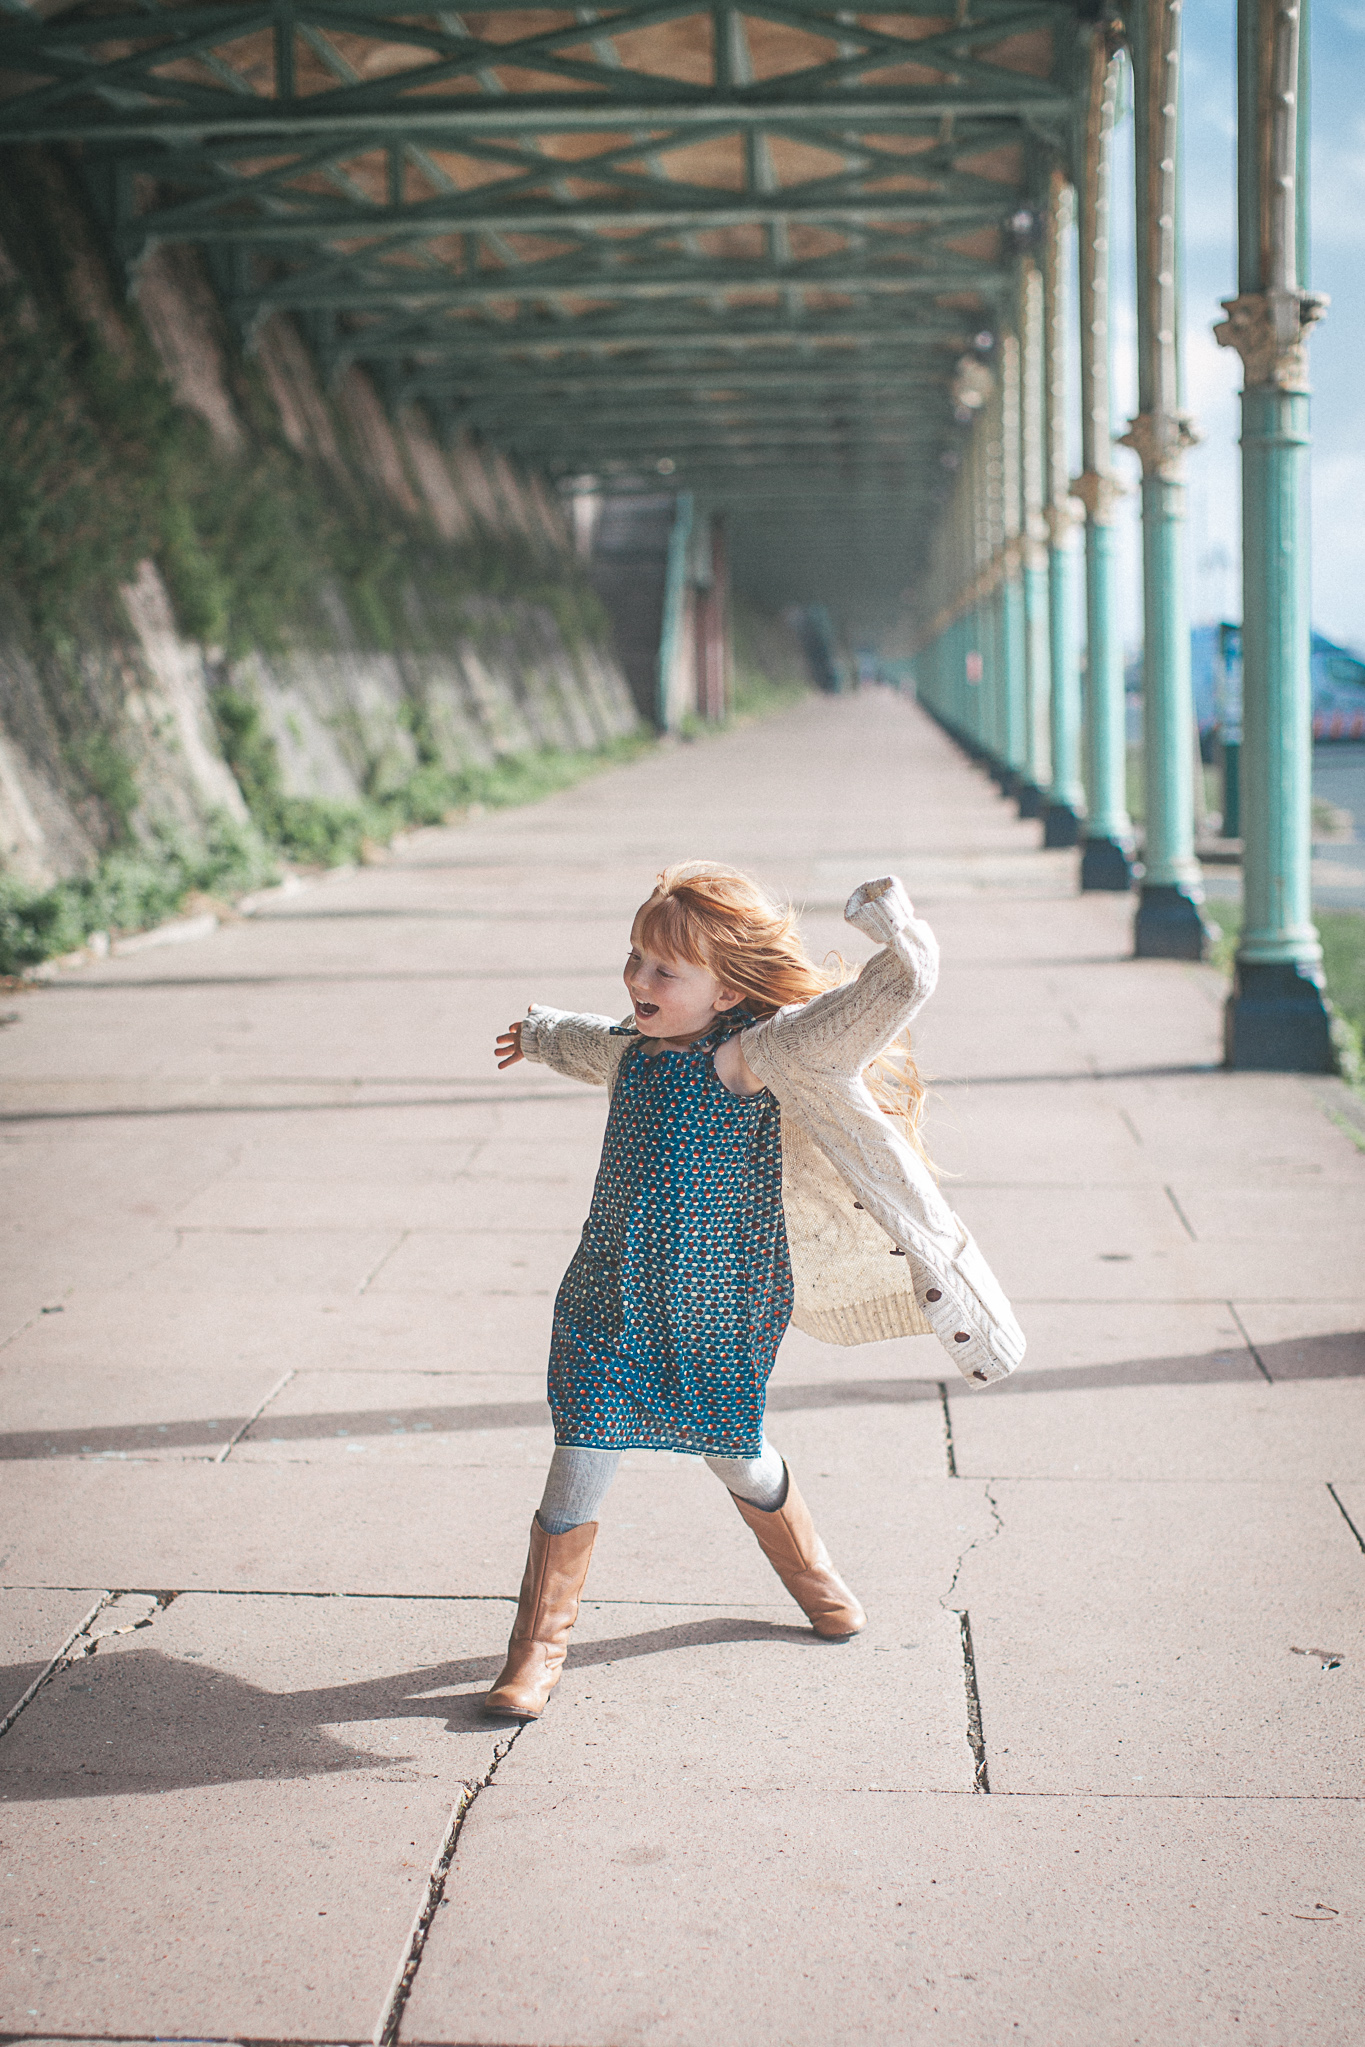 ethical_childrens_clothing_231013_016.jpg